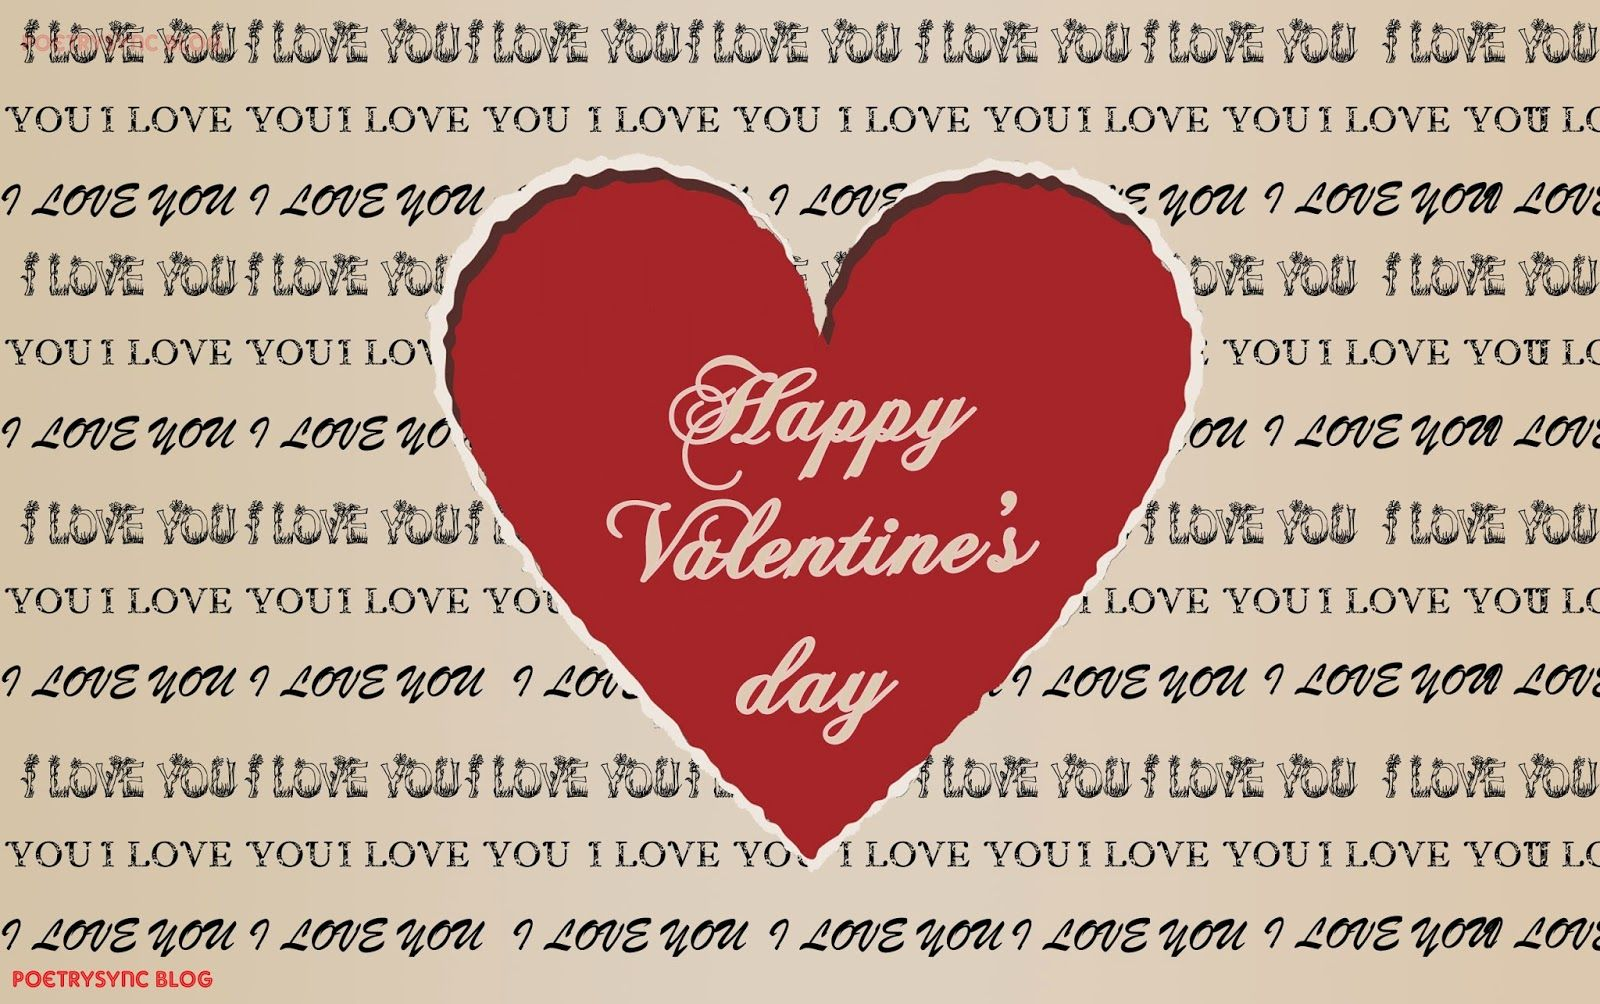 Valentines day e cards happy valentines day hearts ecards valentines day e cards happy valentines day hearts ecards wallpapers altavistaventures Image collections